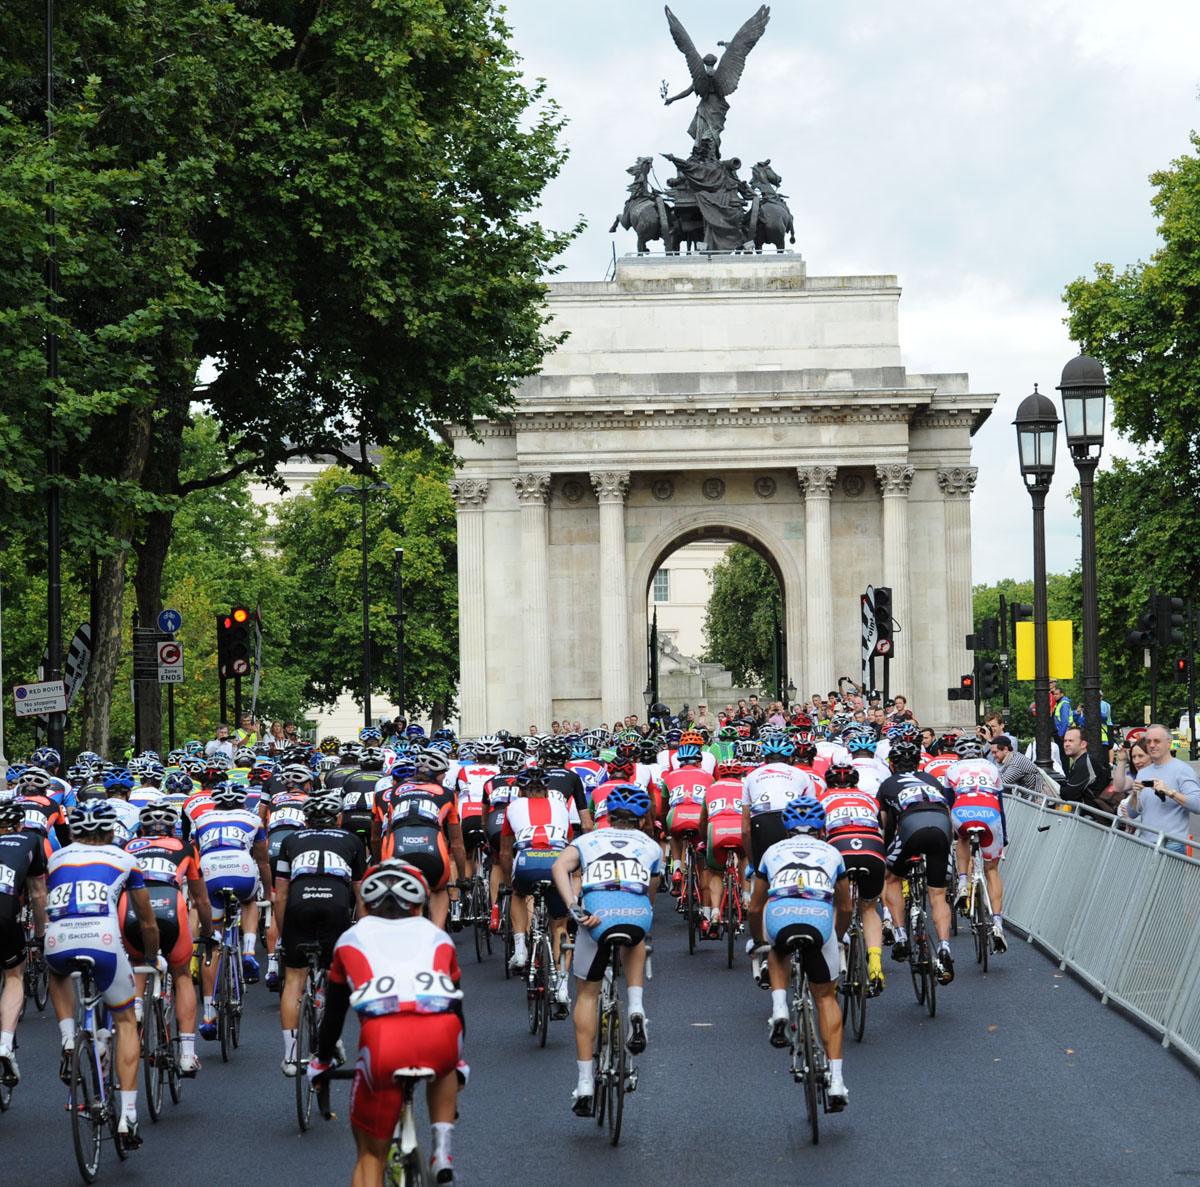 Wellington Arch, London-Surrey Cycle Classic 2011